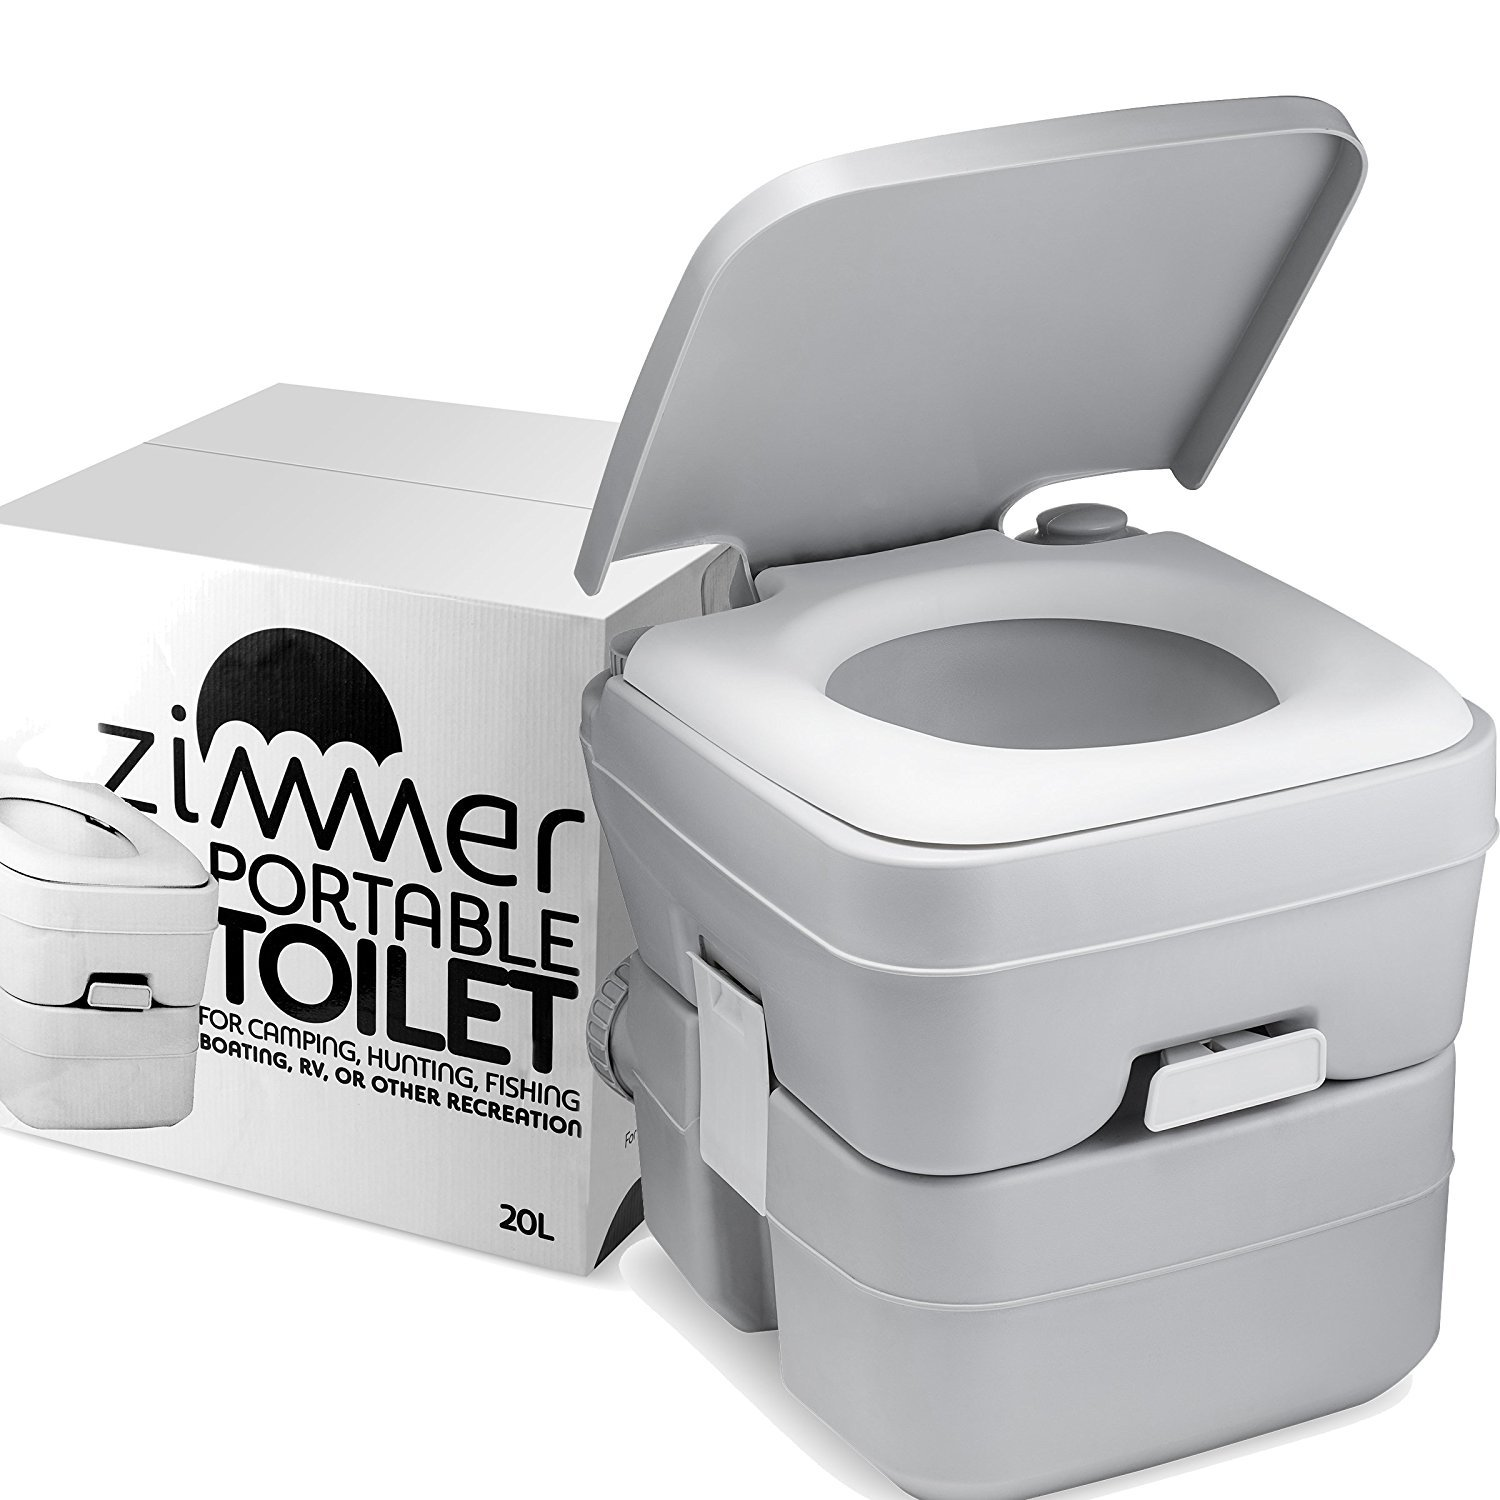 Portable Toilet Camping Porta Potty - 5 Gallon Waste Tank - Durable, Leak Proof, Flushable Easy to use RV Toilet With Detachable Tanks for Effortless Cleaning & Carrying, for Travel, Boating and Trips by ZIMMER